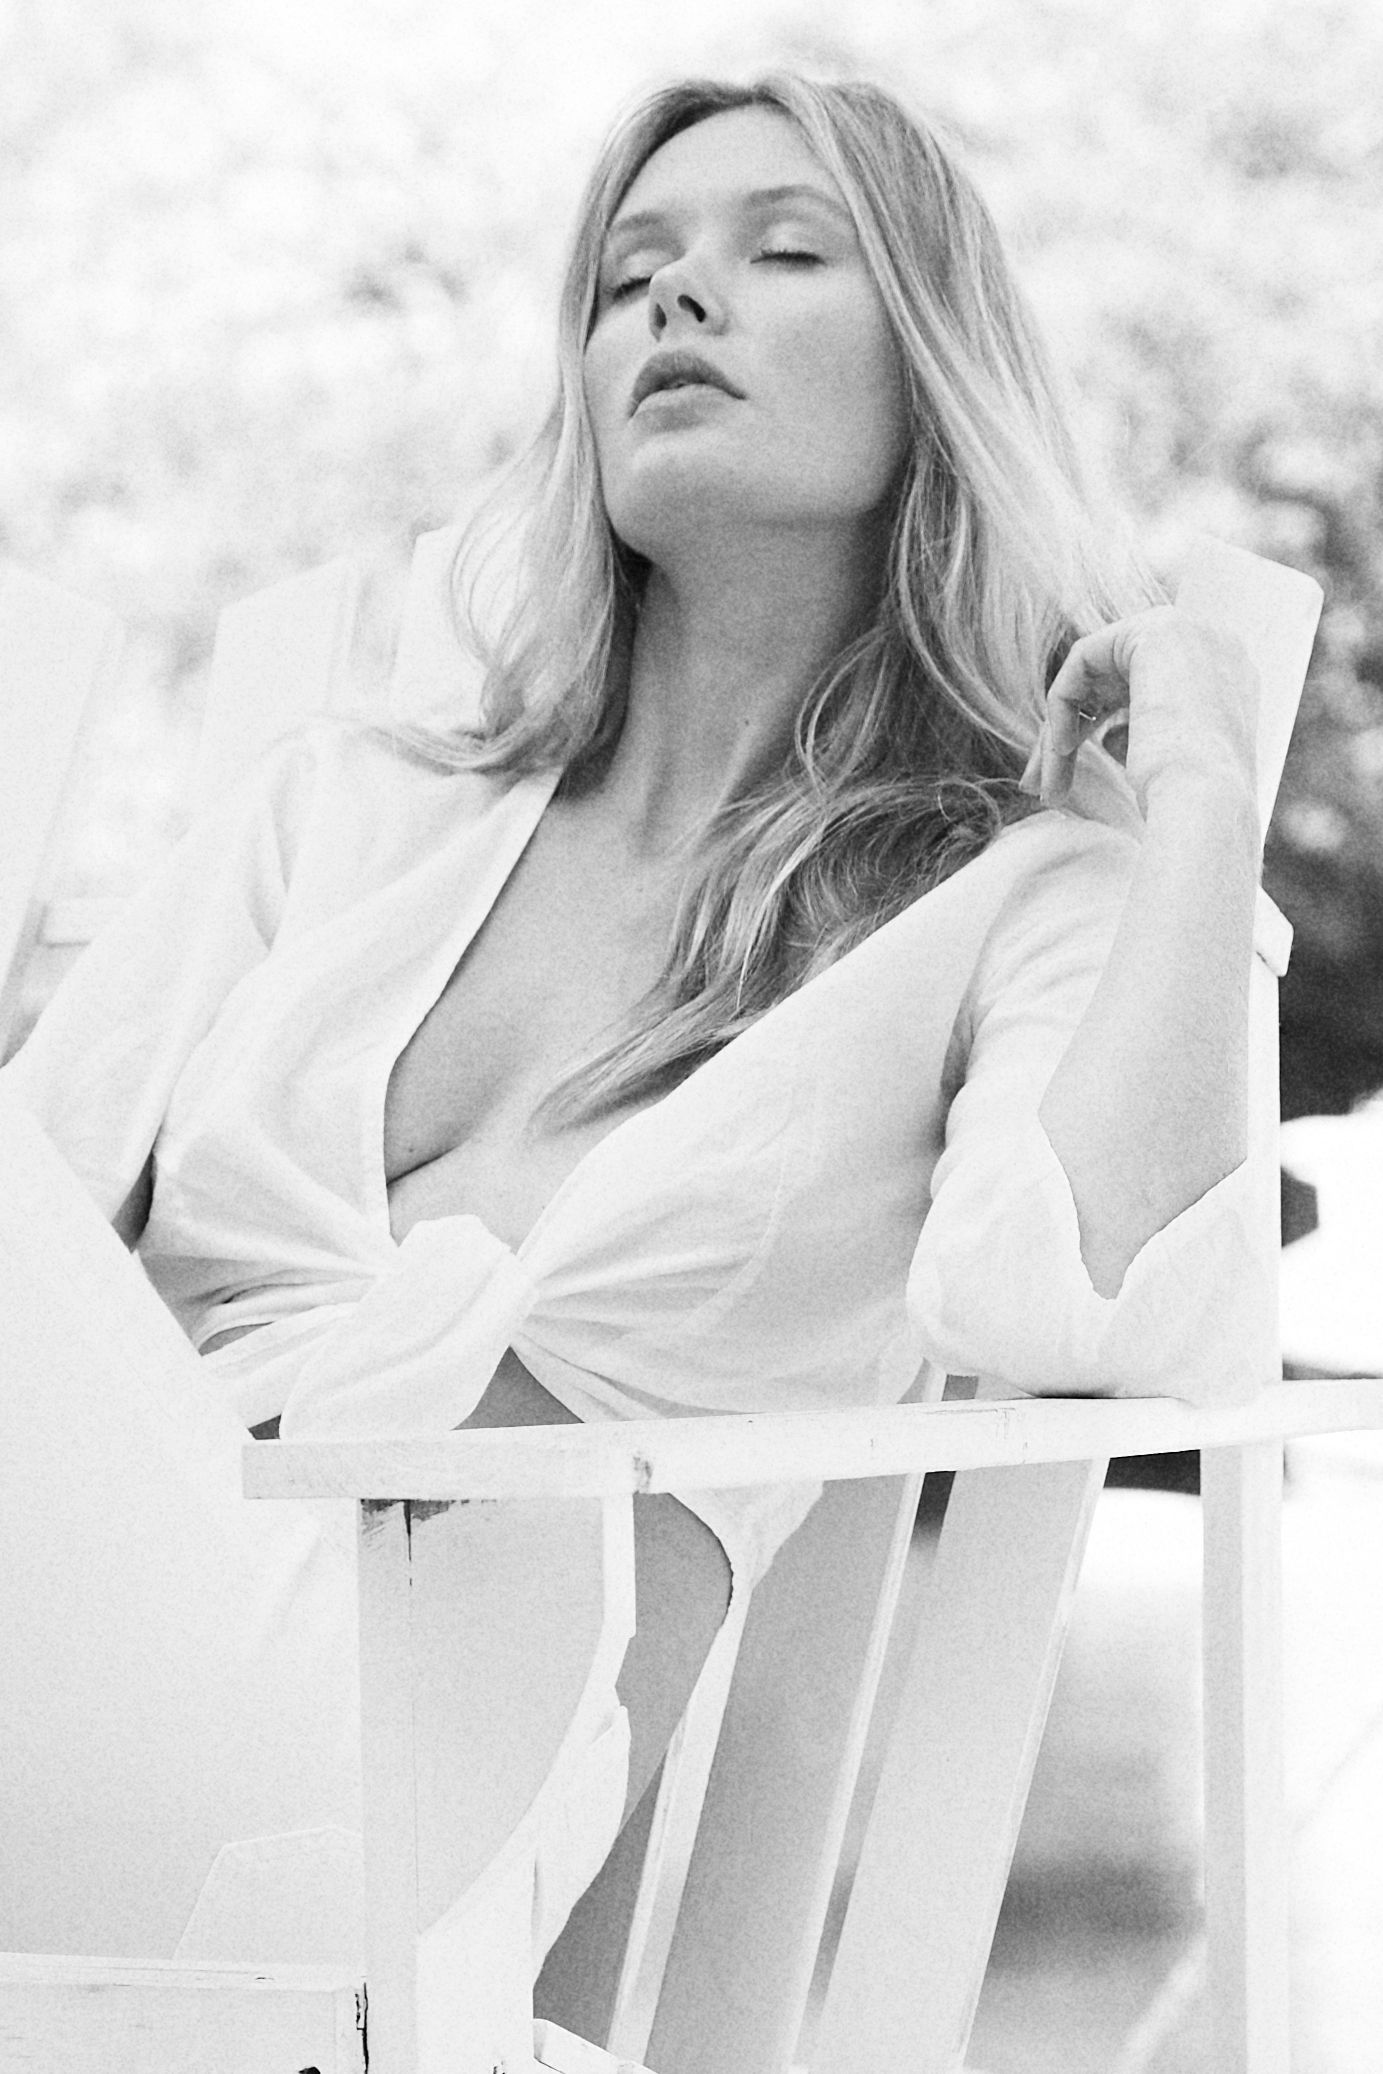 Model Carley Johnston sitting in white rocking chair on a porch South Beach, Miami